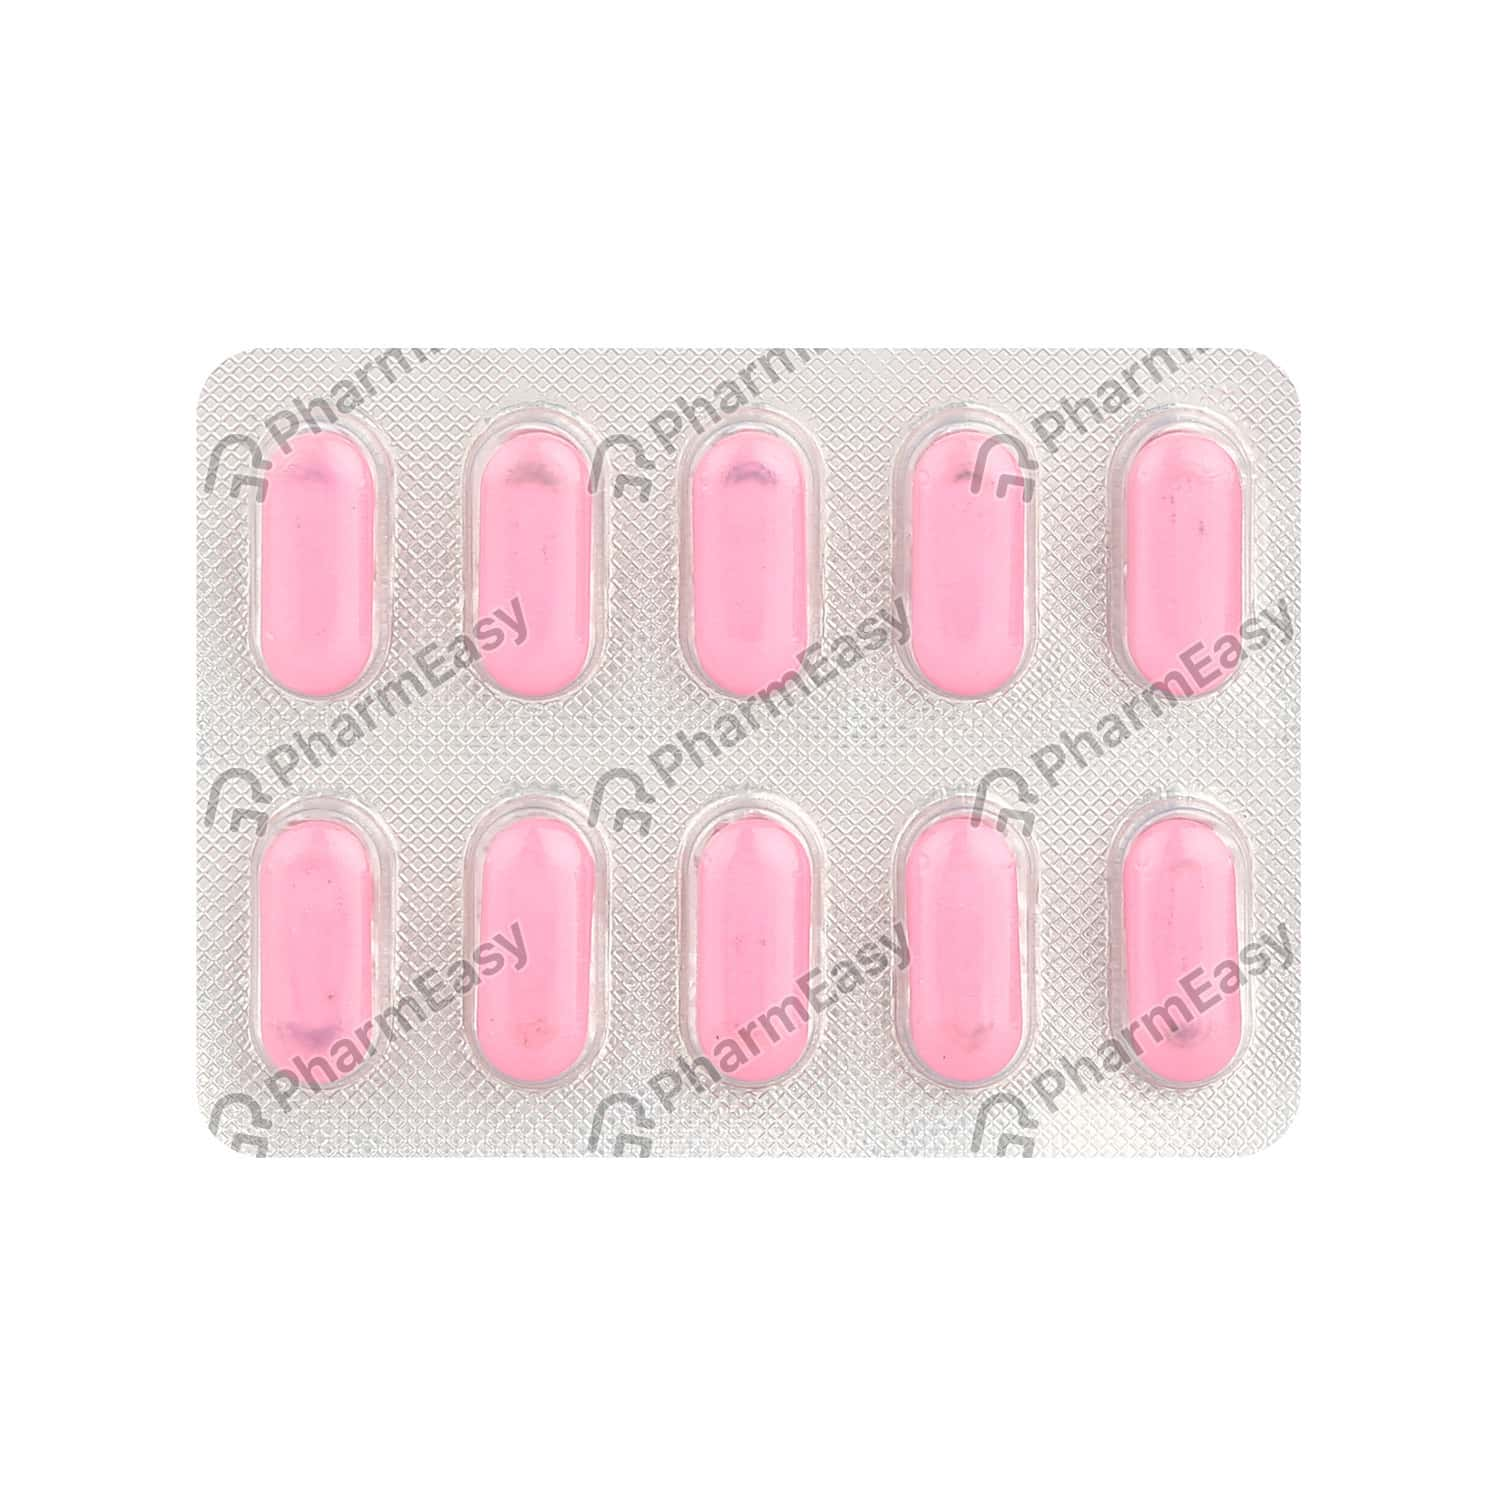 Calbisix Strip Of 10 Tablets